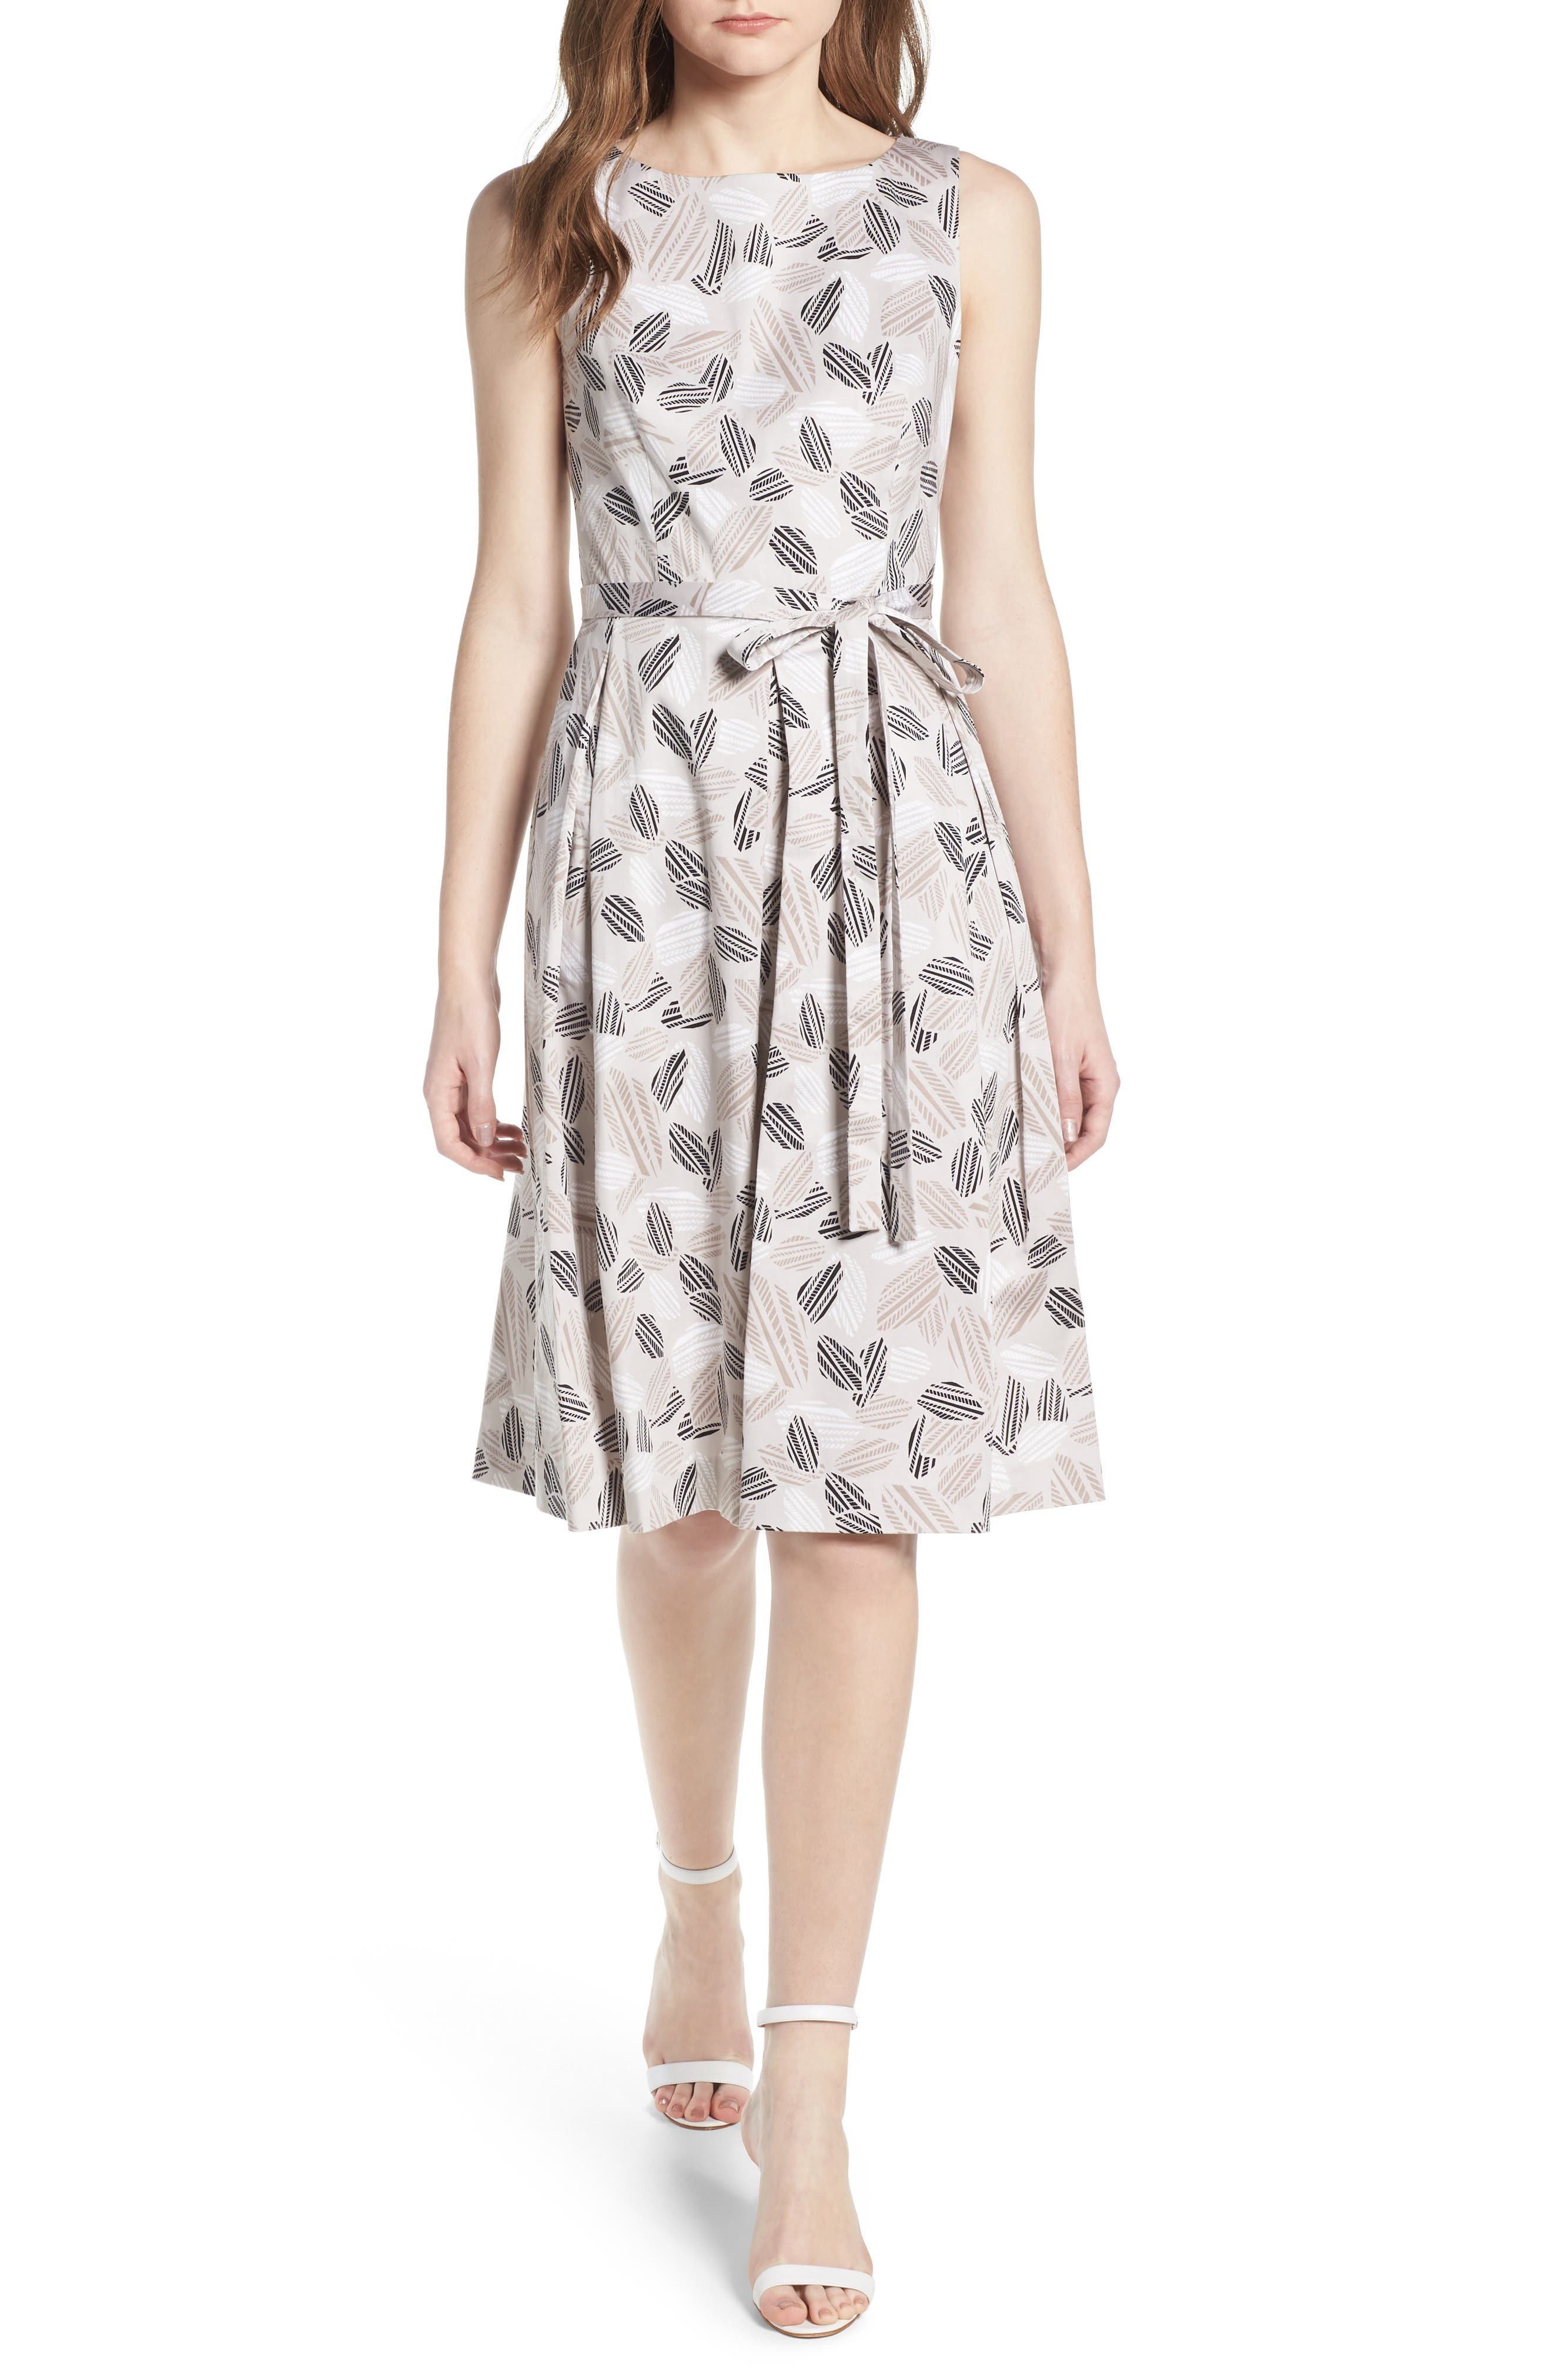 Leaf Print Fit And Flare Dress,                         Main,                         color, Parchment/ Oyster Shell Combo